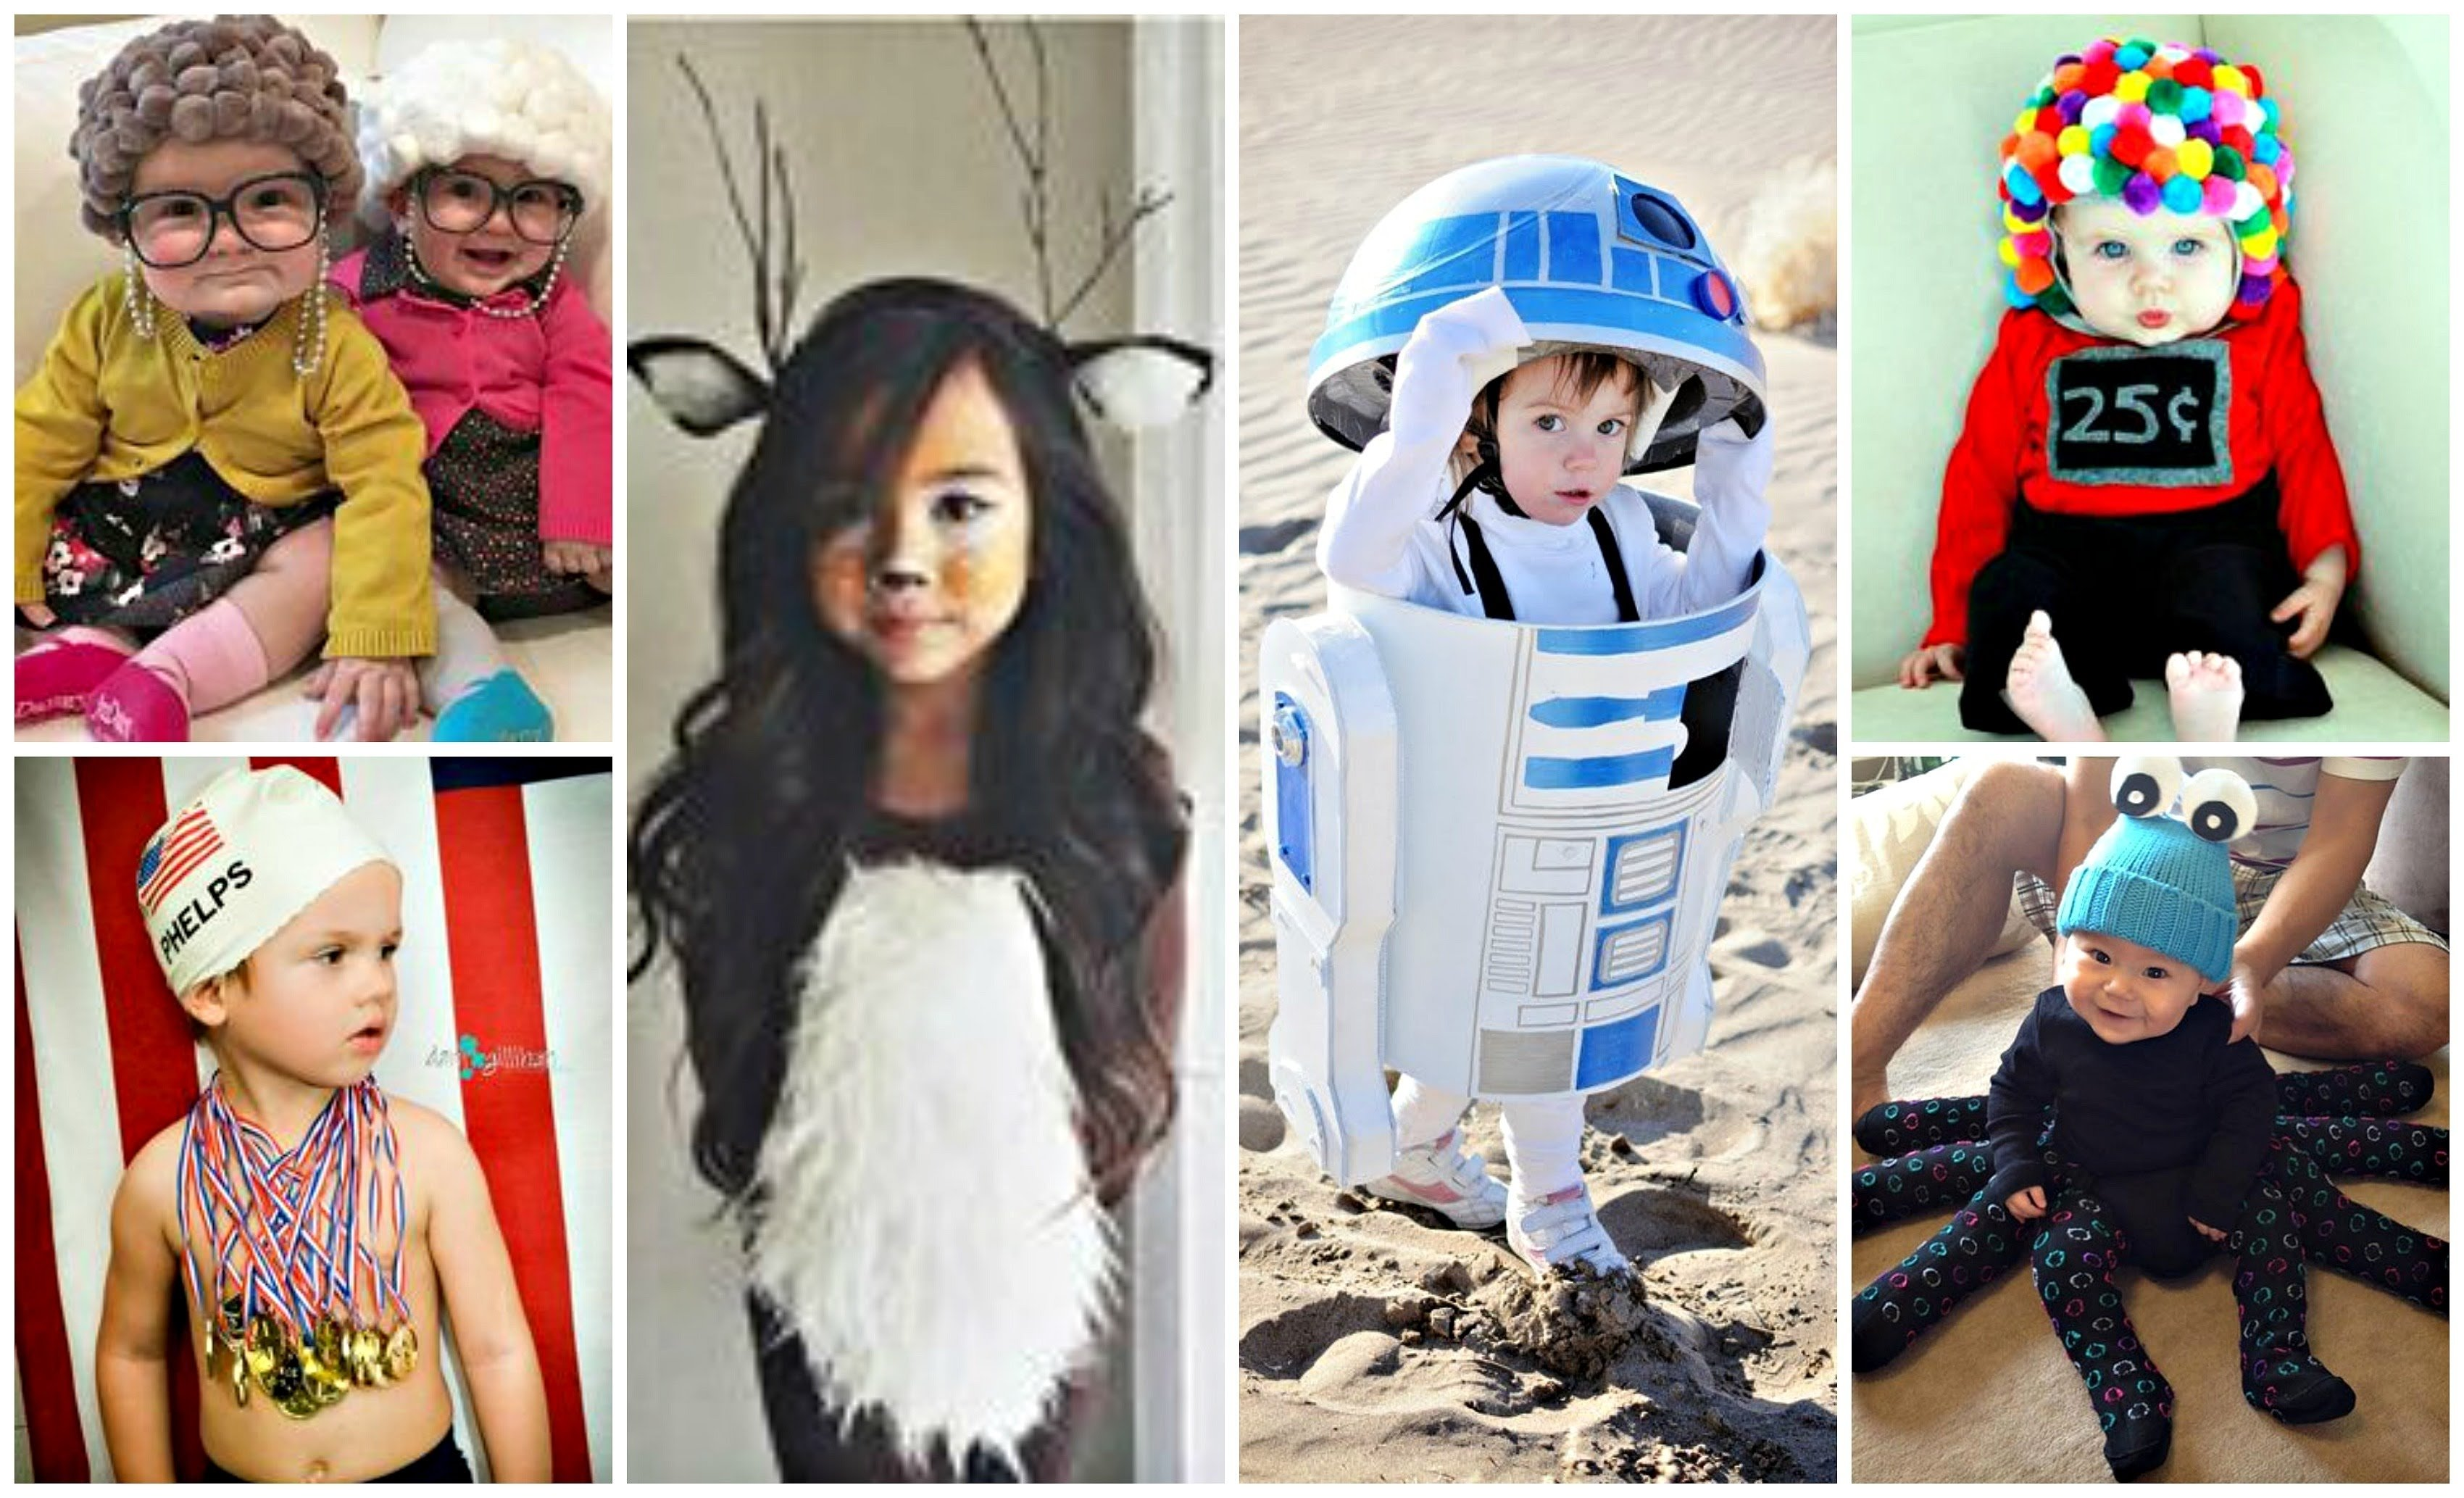 10 Famous Ideas For Halloween Costumes For Kids diy halloween costume ideas for kids toddlers youtube 11 2021